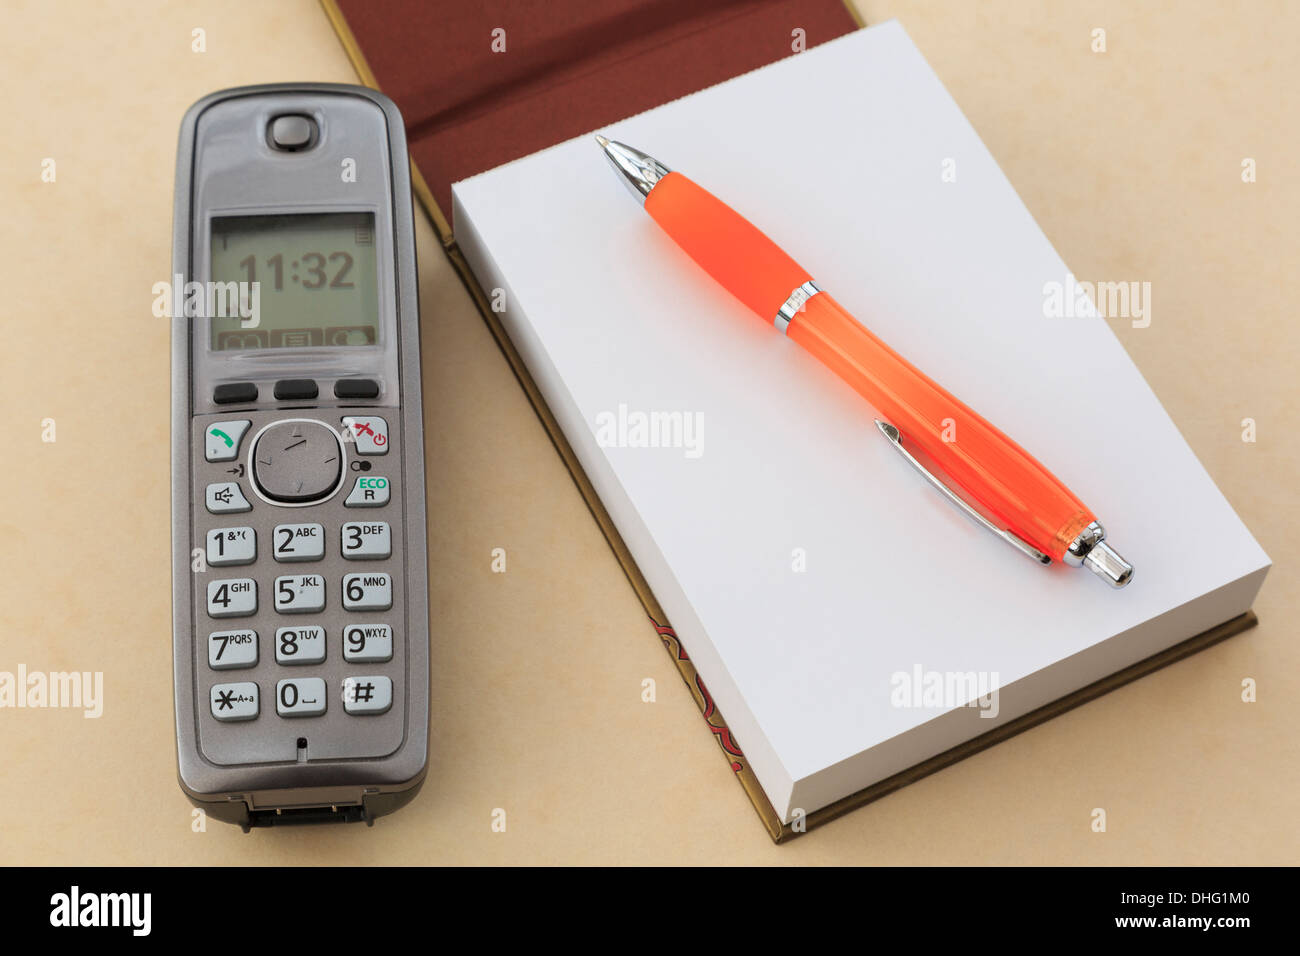 Cordless modern digital telephone handset with a blank notepad notebook and a pen on a plain beige tabletop background - Stock Image